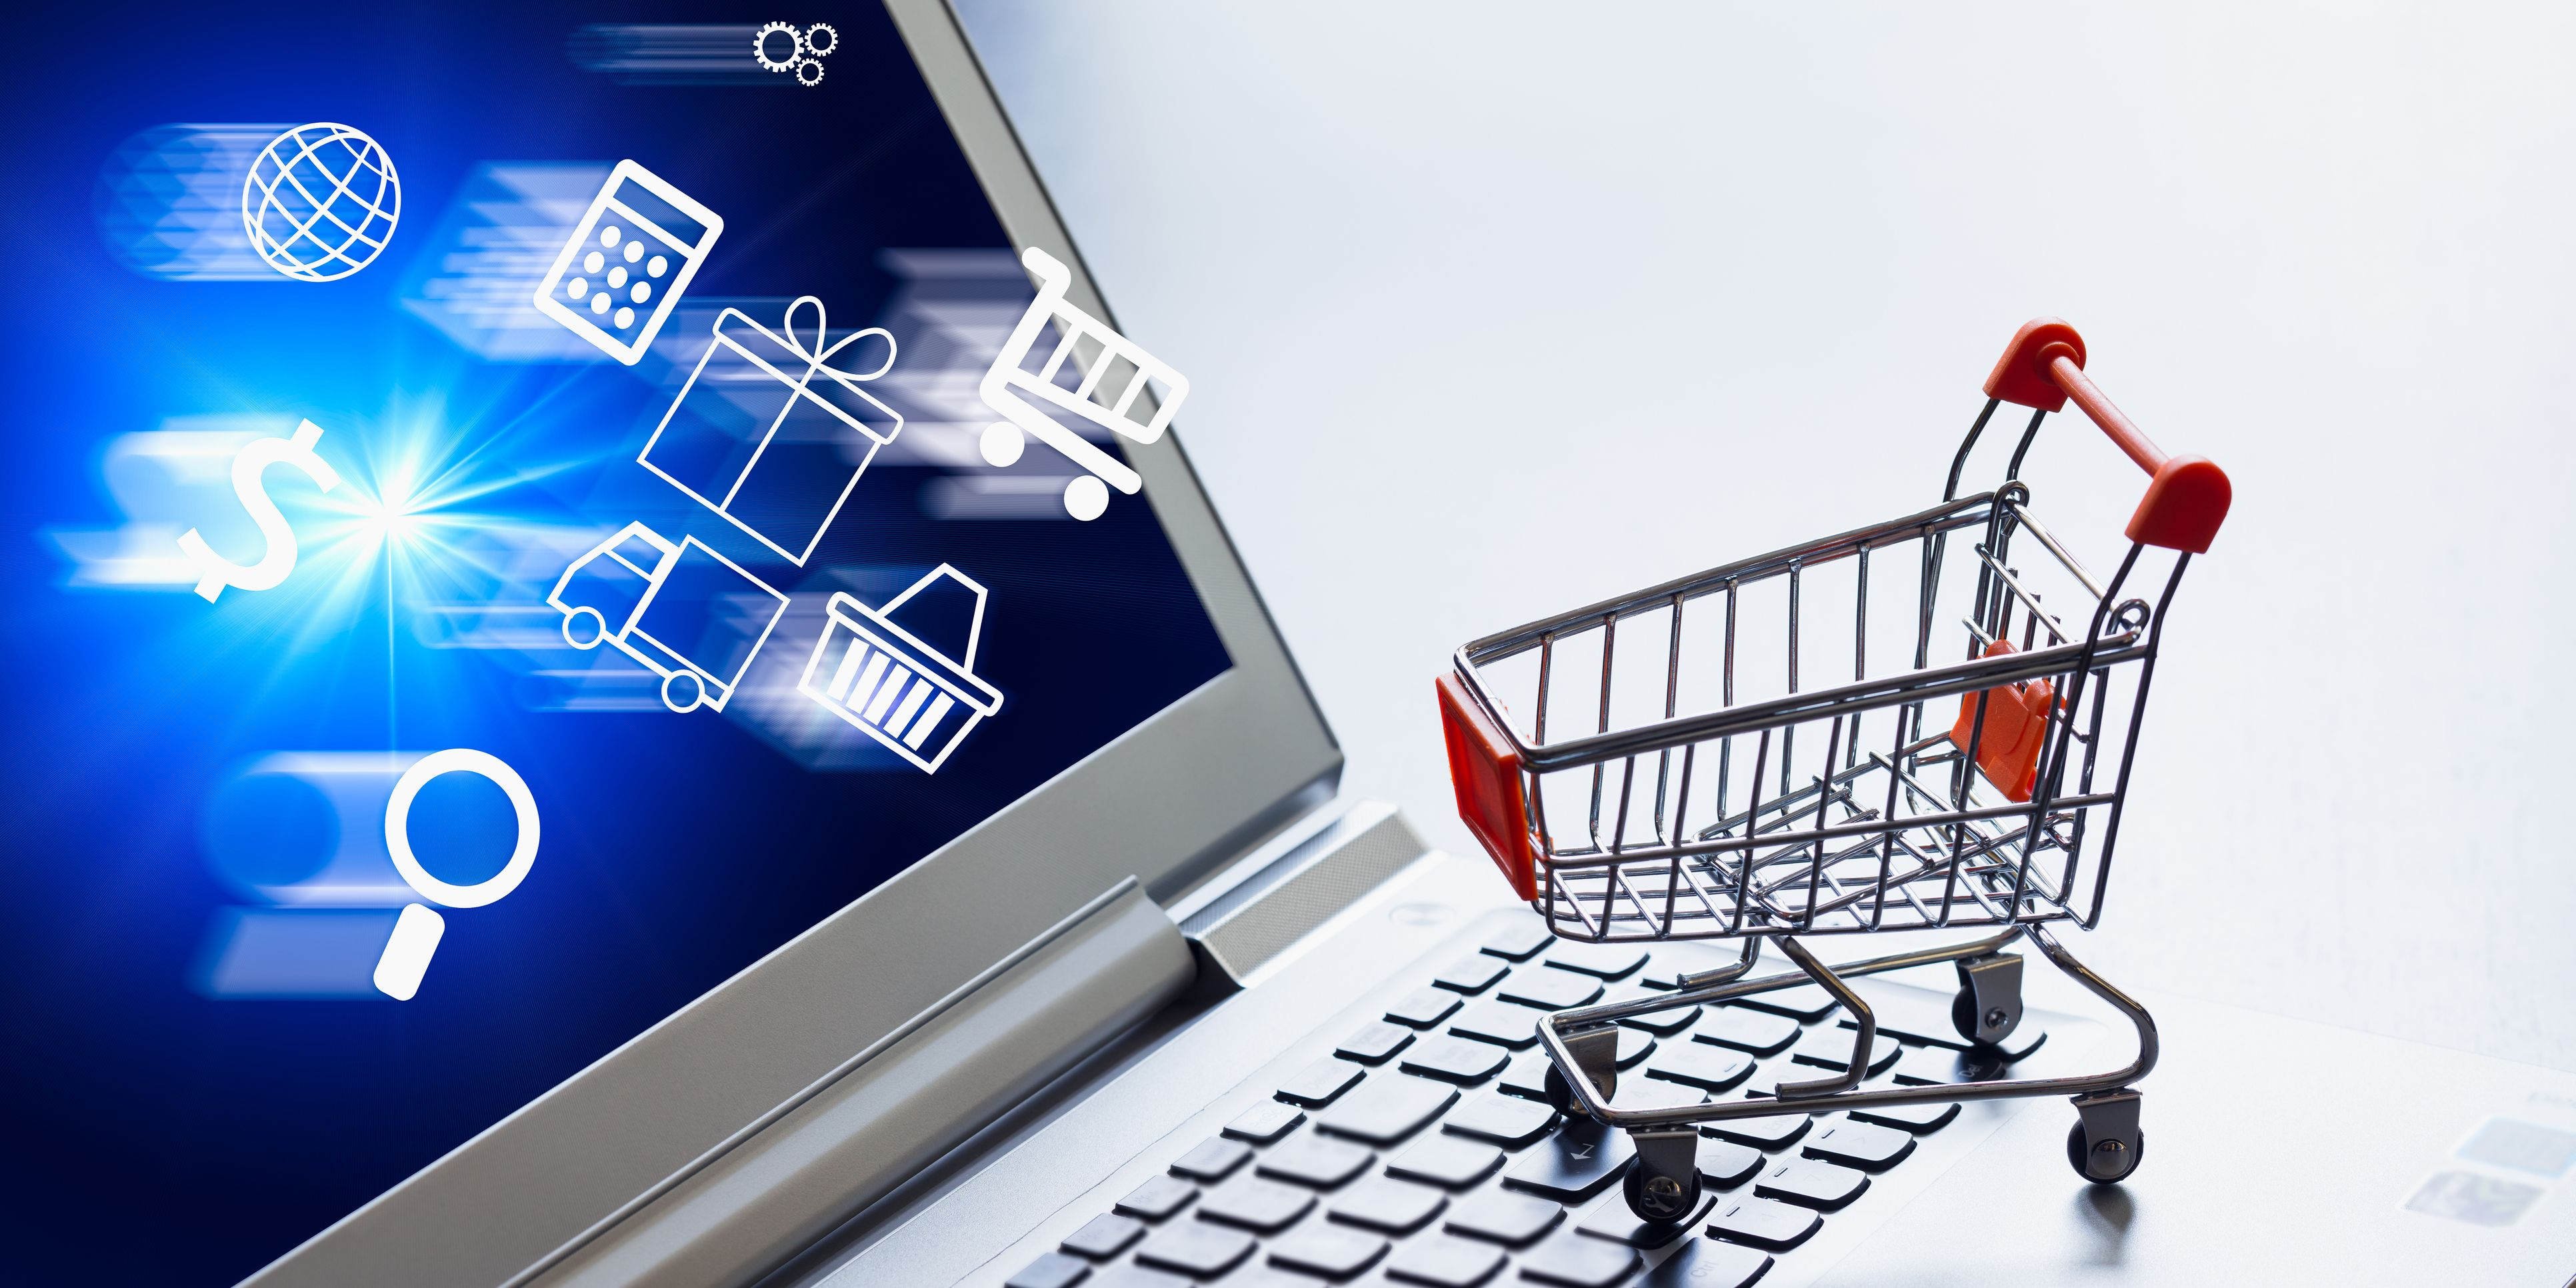 Online shopping concept. Shopping apps icons in shopping cart on laptop